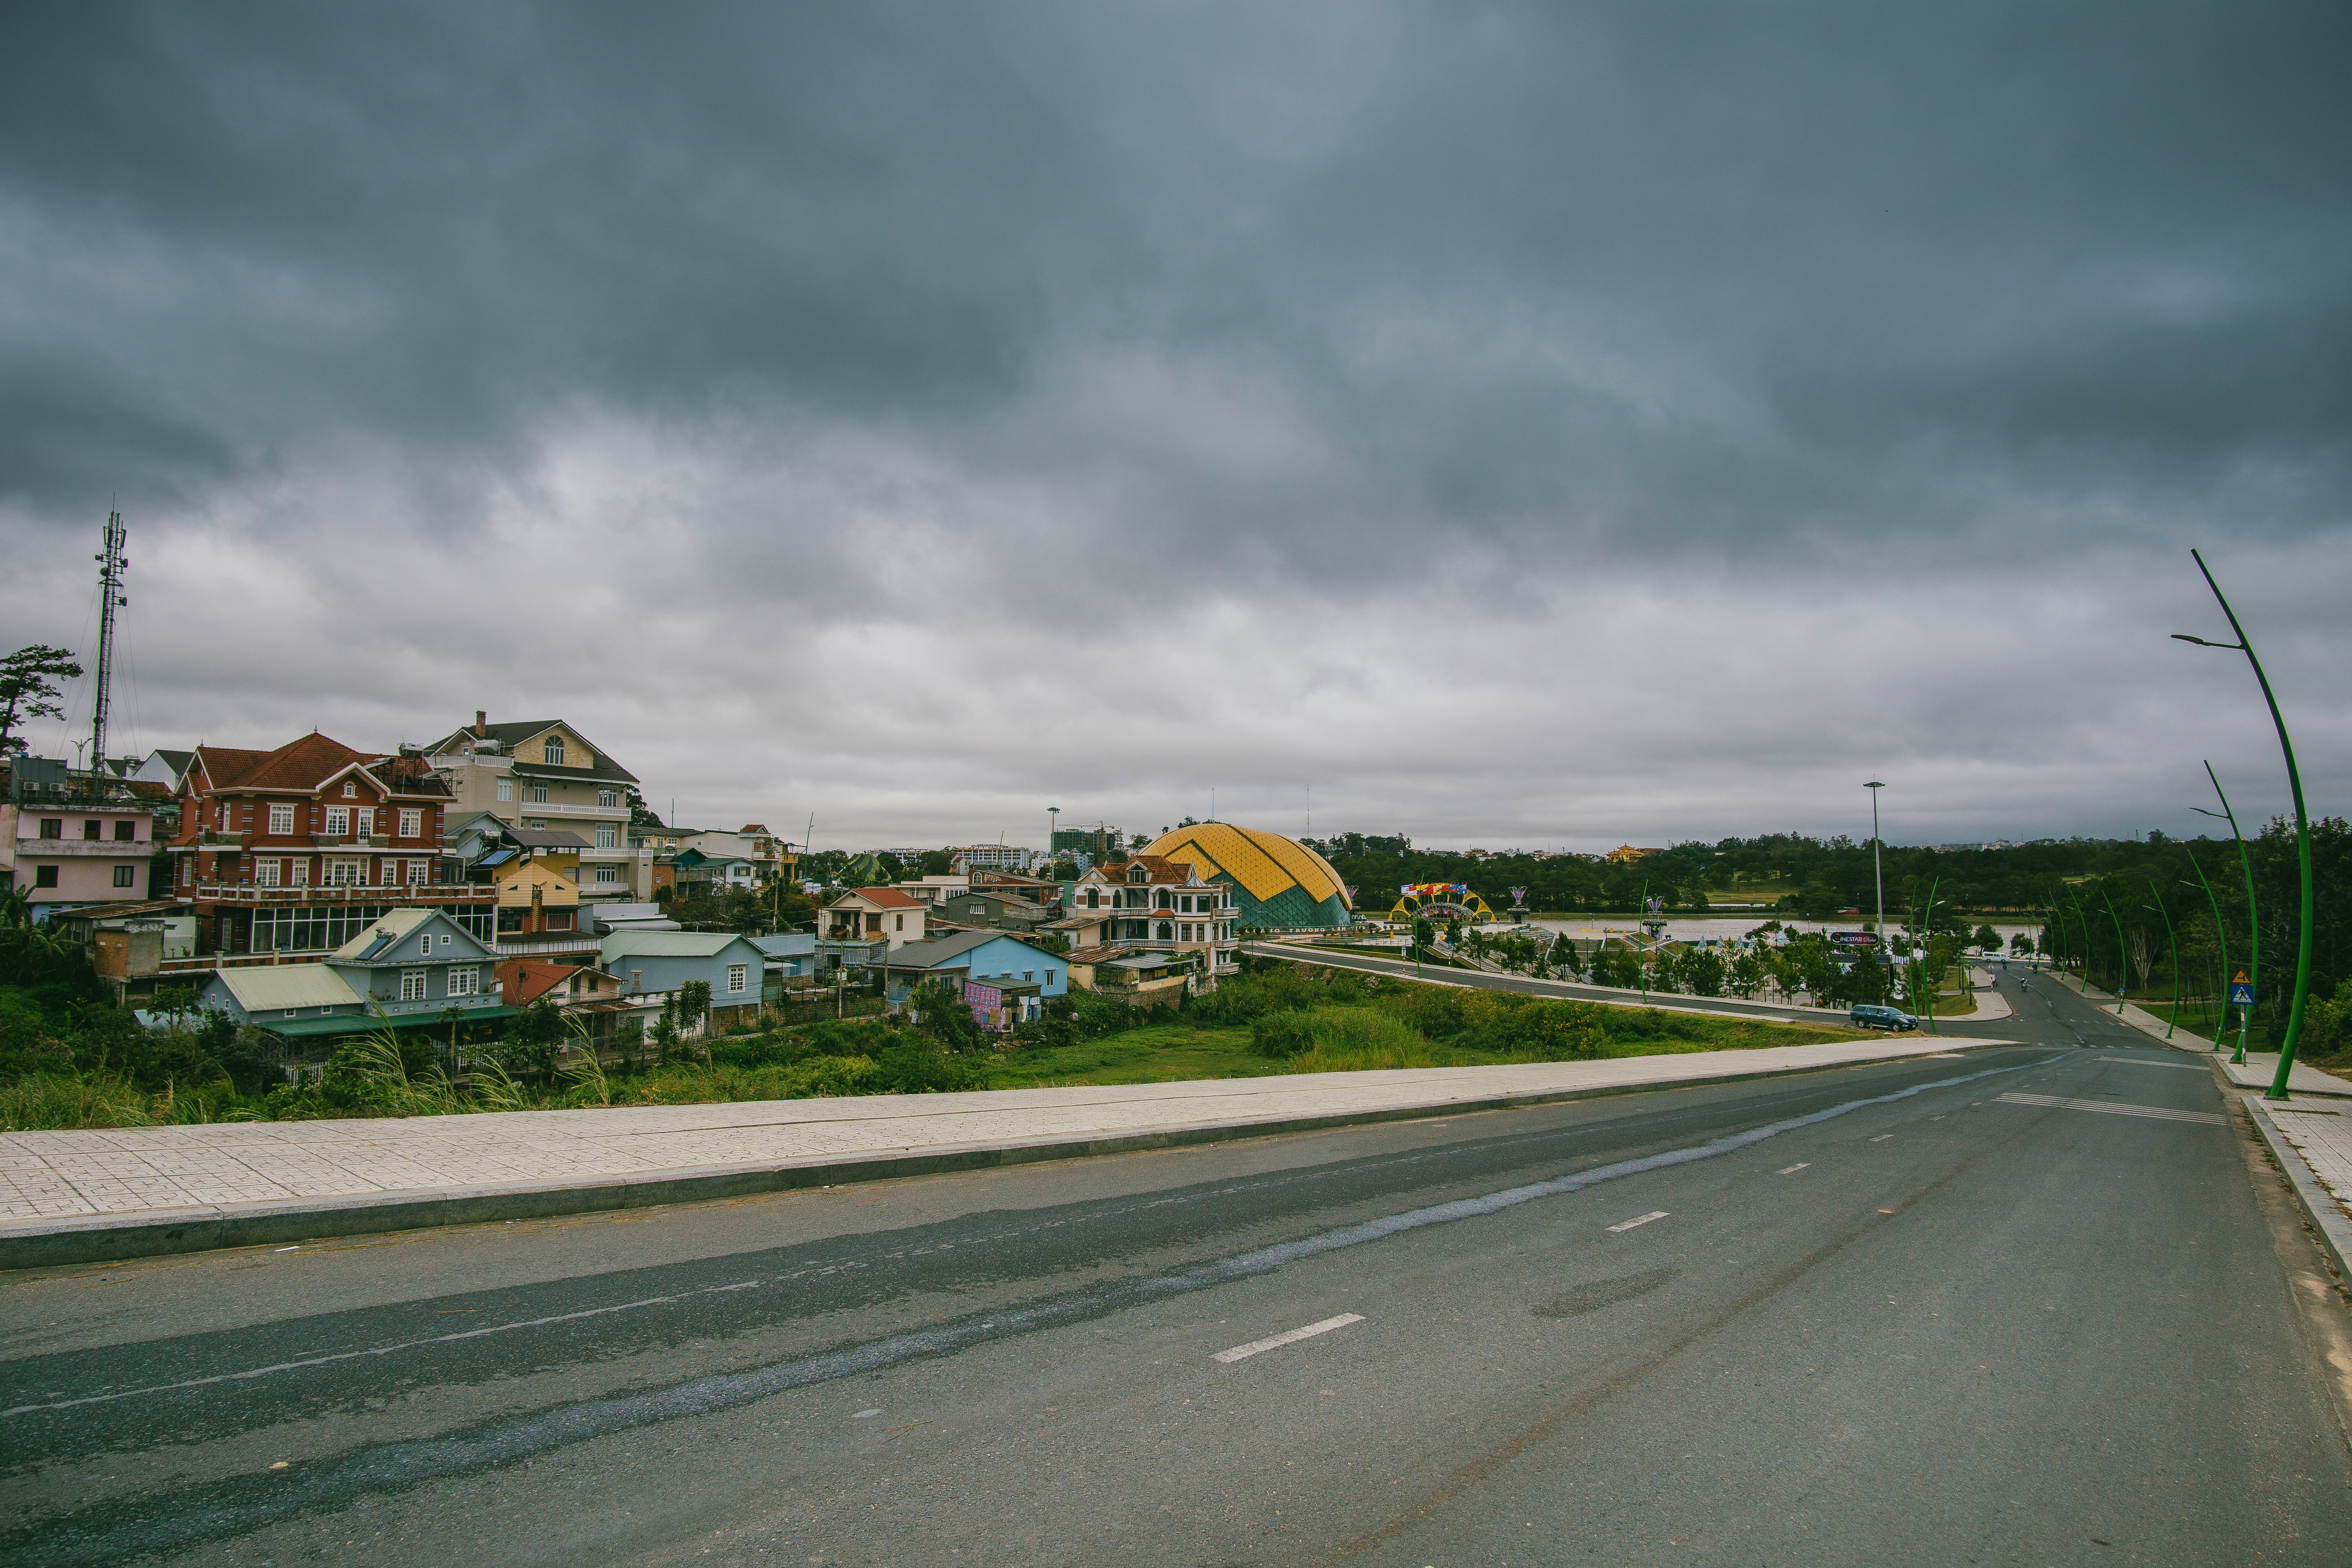 Village beside road under cloudy sky photo